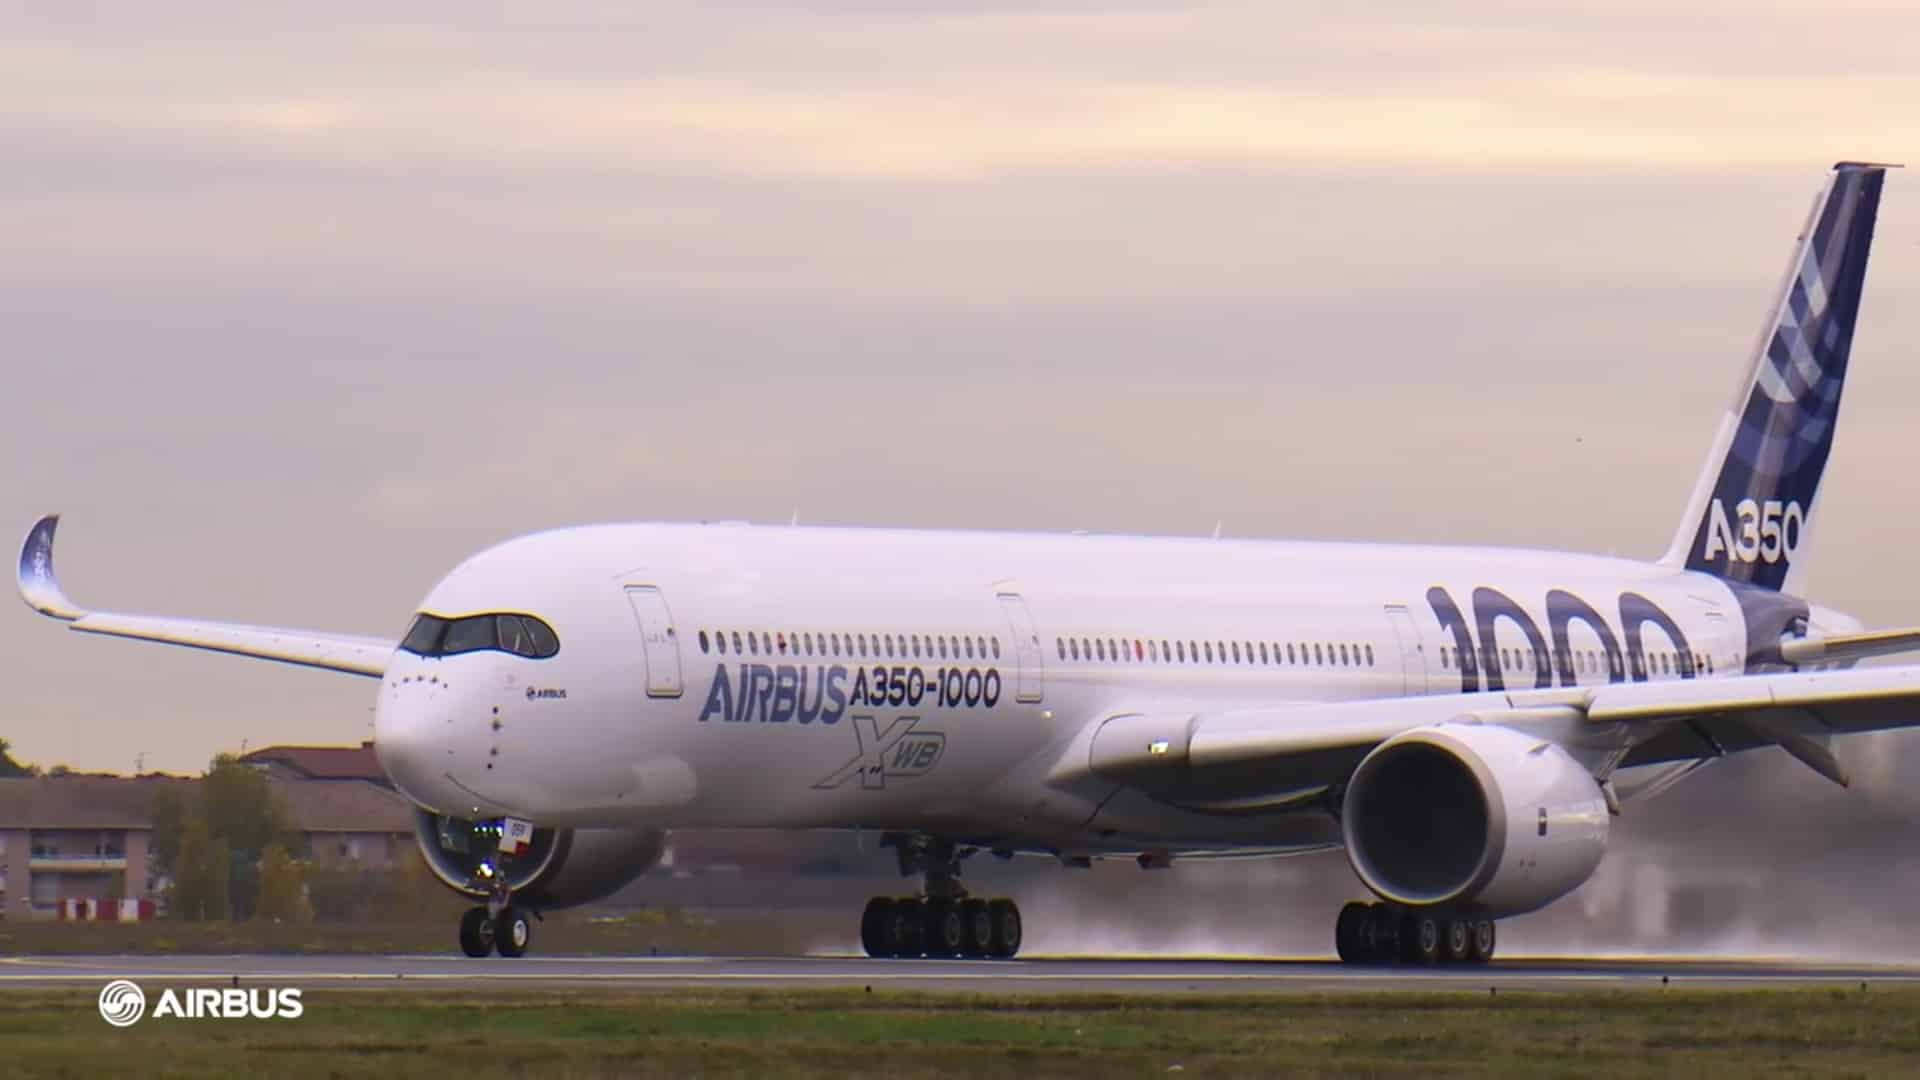 airbus-a350-1000-motoare-turate